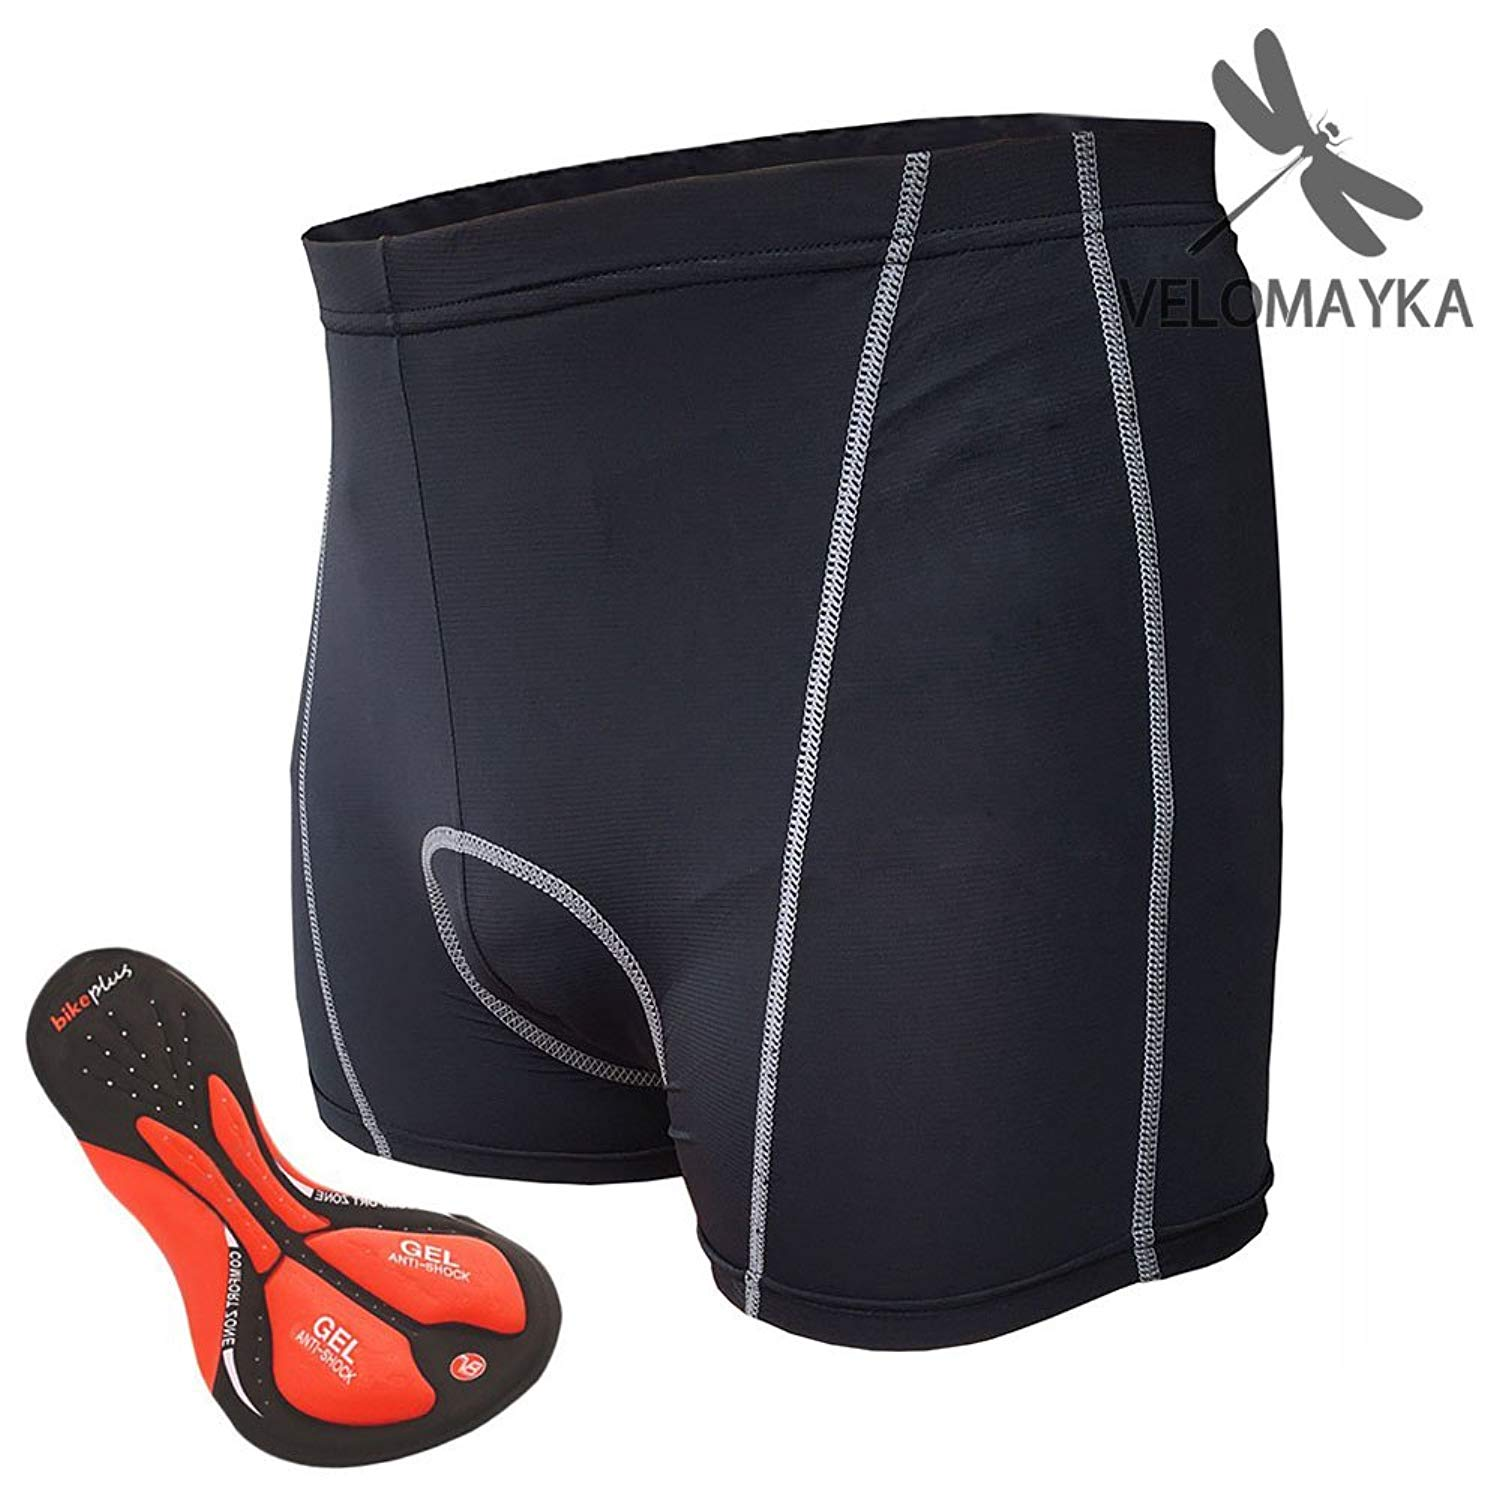 Velomayka Cycling Underwear 3D Padded Gel Riding Cycling Shorts Padded Pants,Breathable, Comfortable, Lightweight